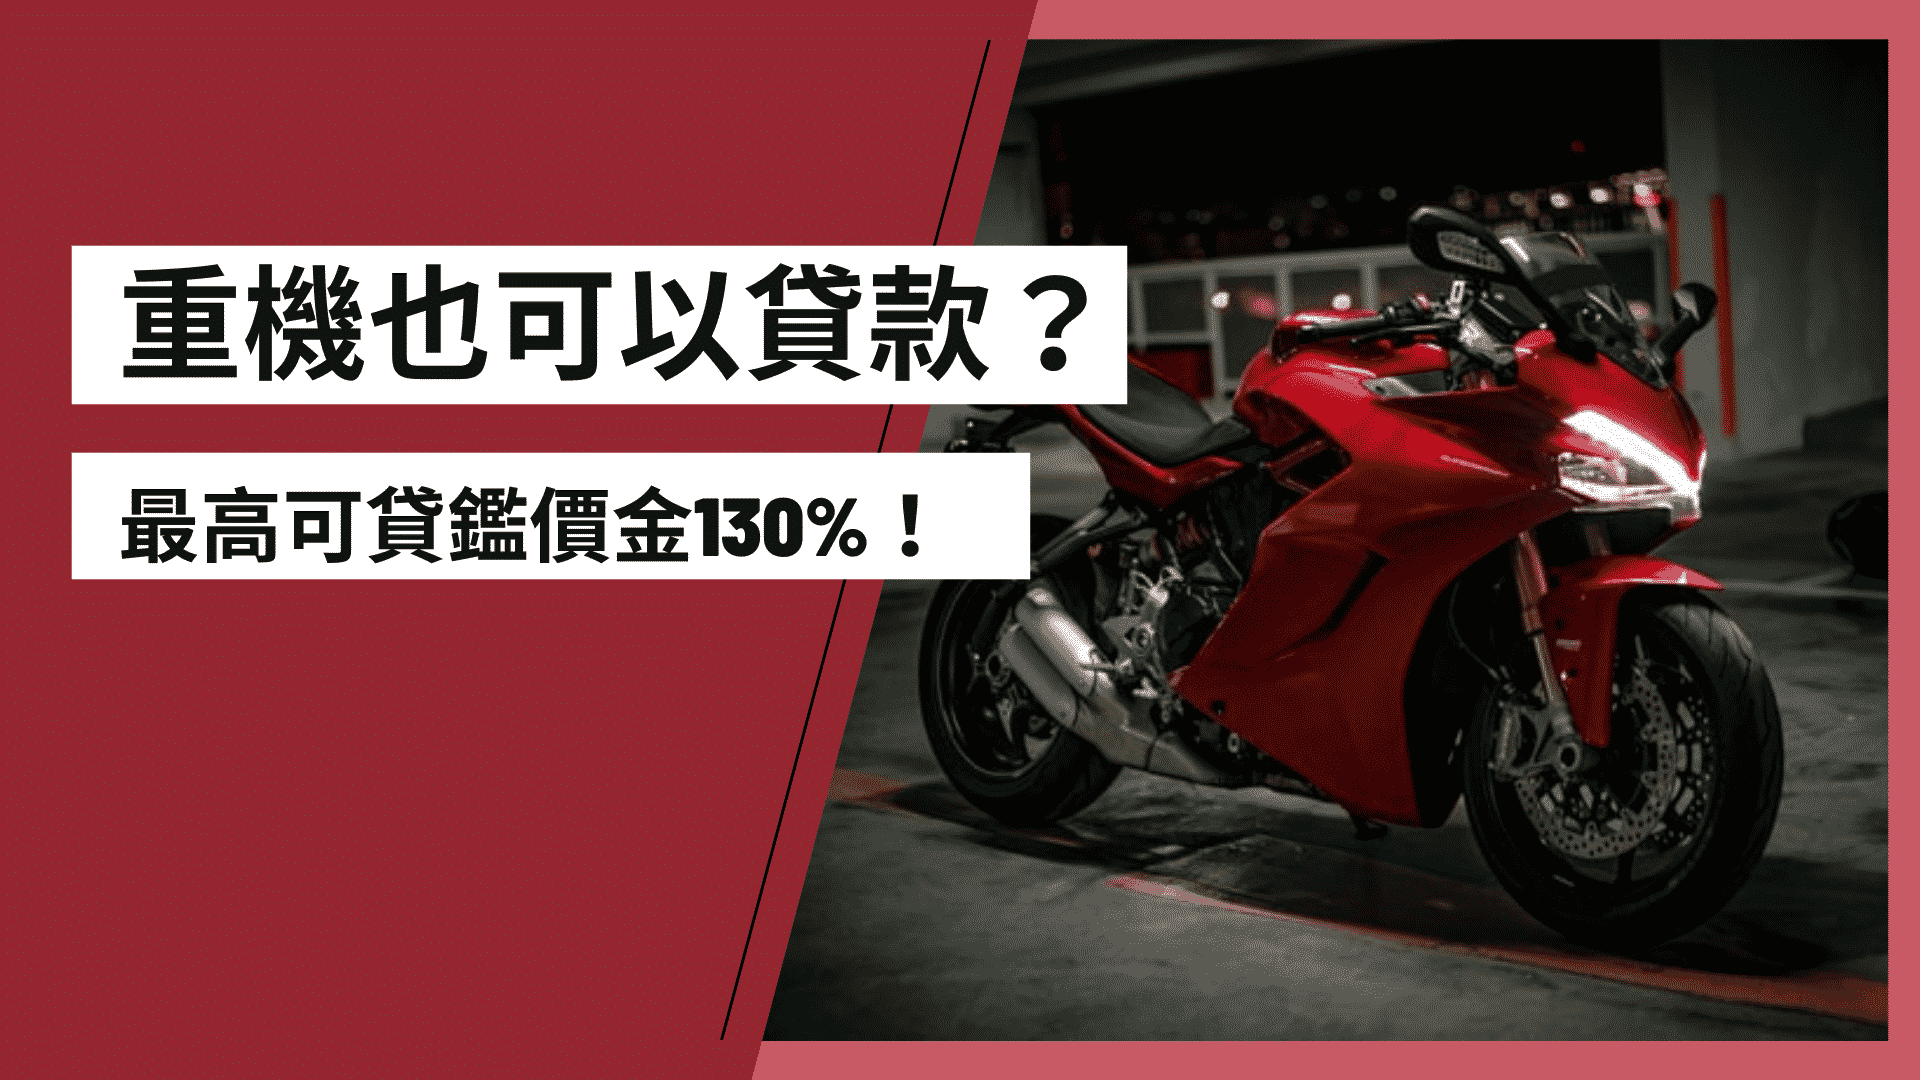 You are currently viewing 重機也可以貸款?!重機貸款,最高可貸鑑價金額130%!